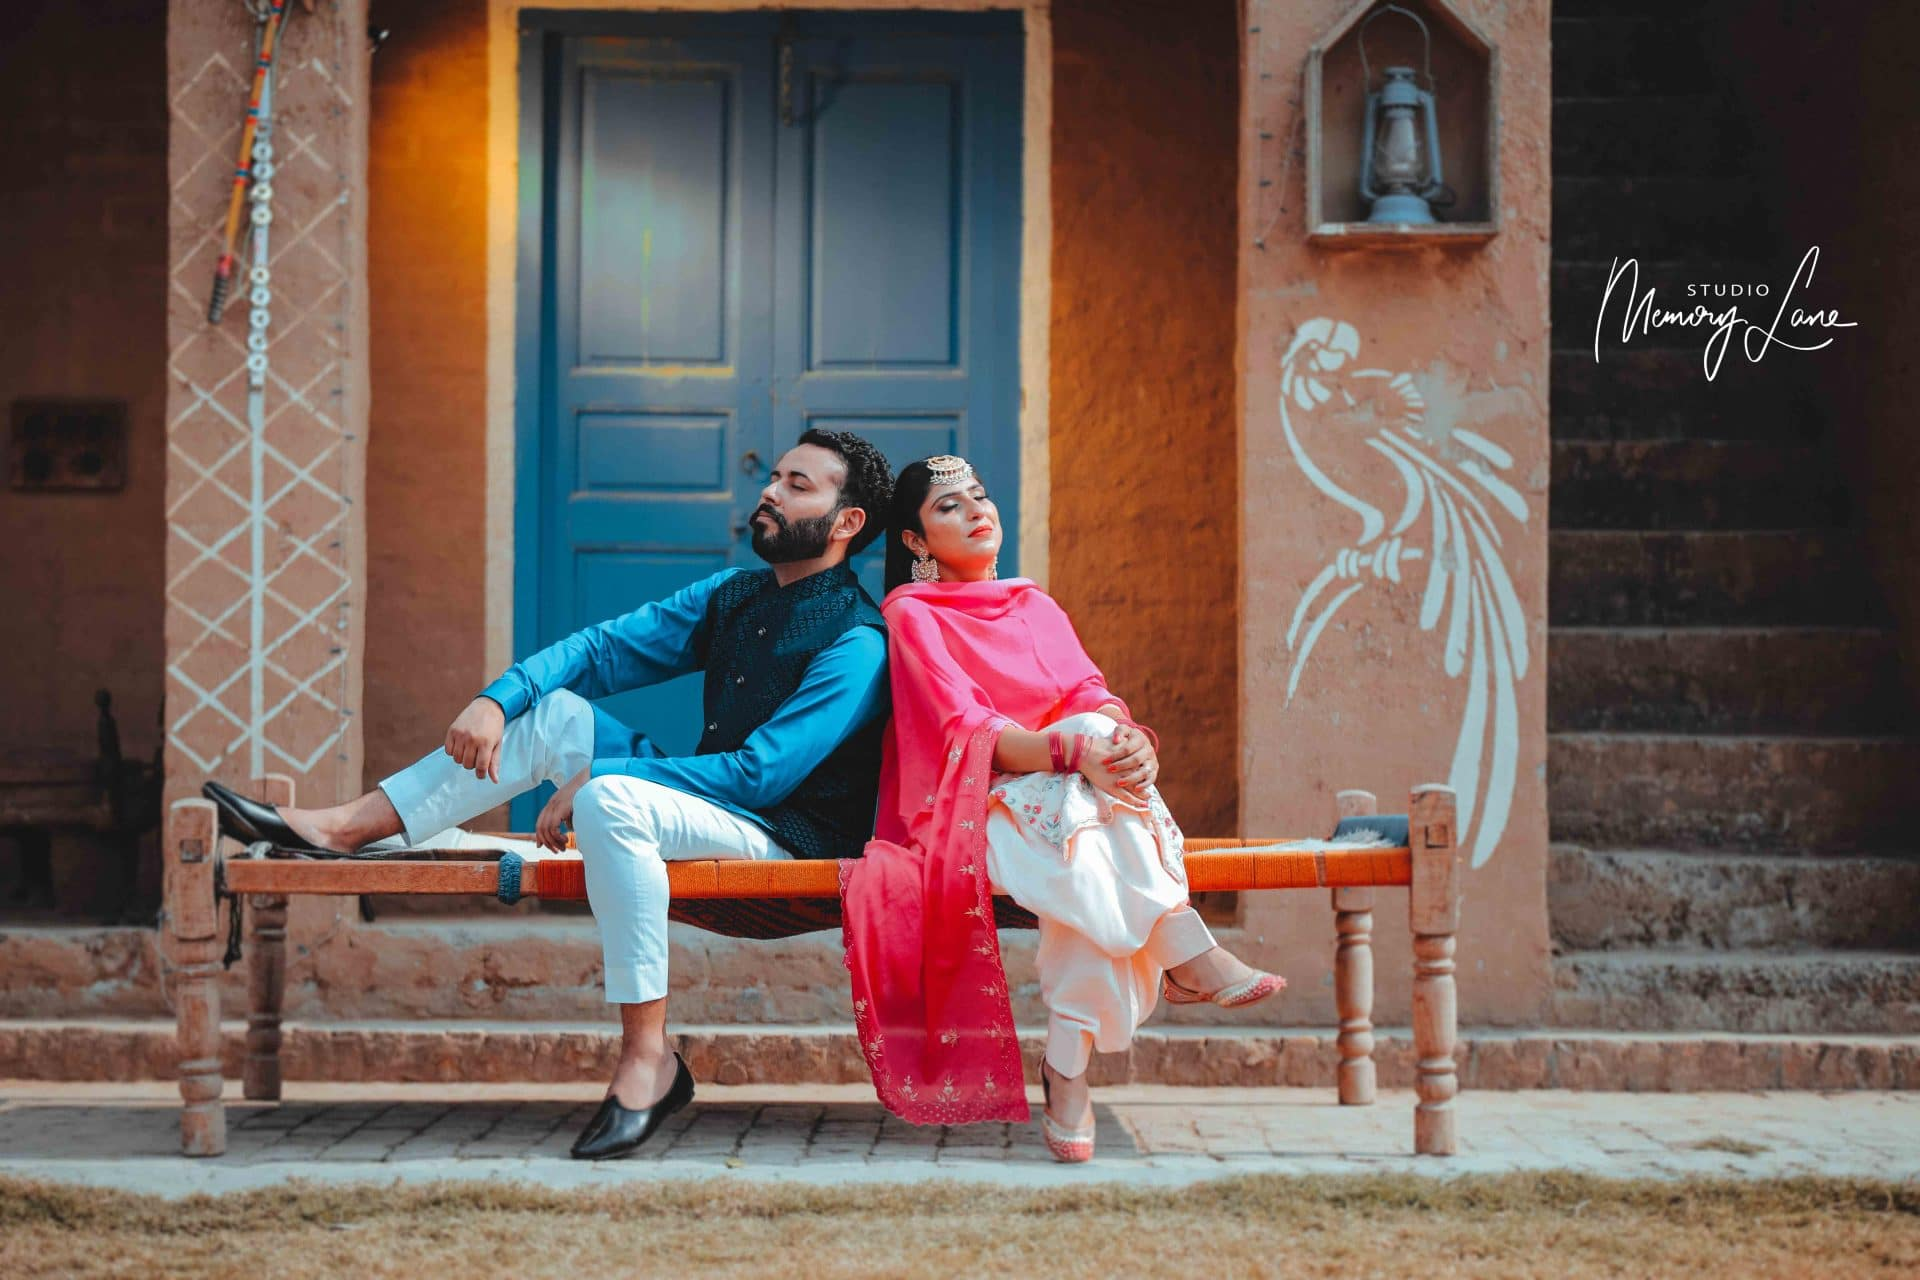 Pre-wedding photographer Chandigarh | For the heritage!